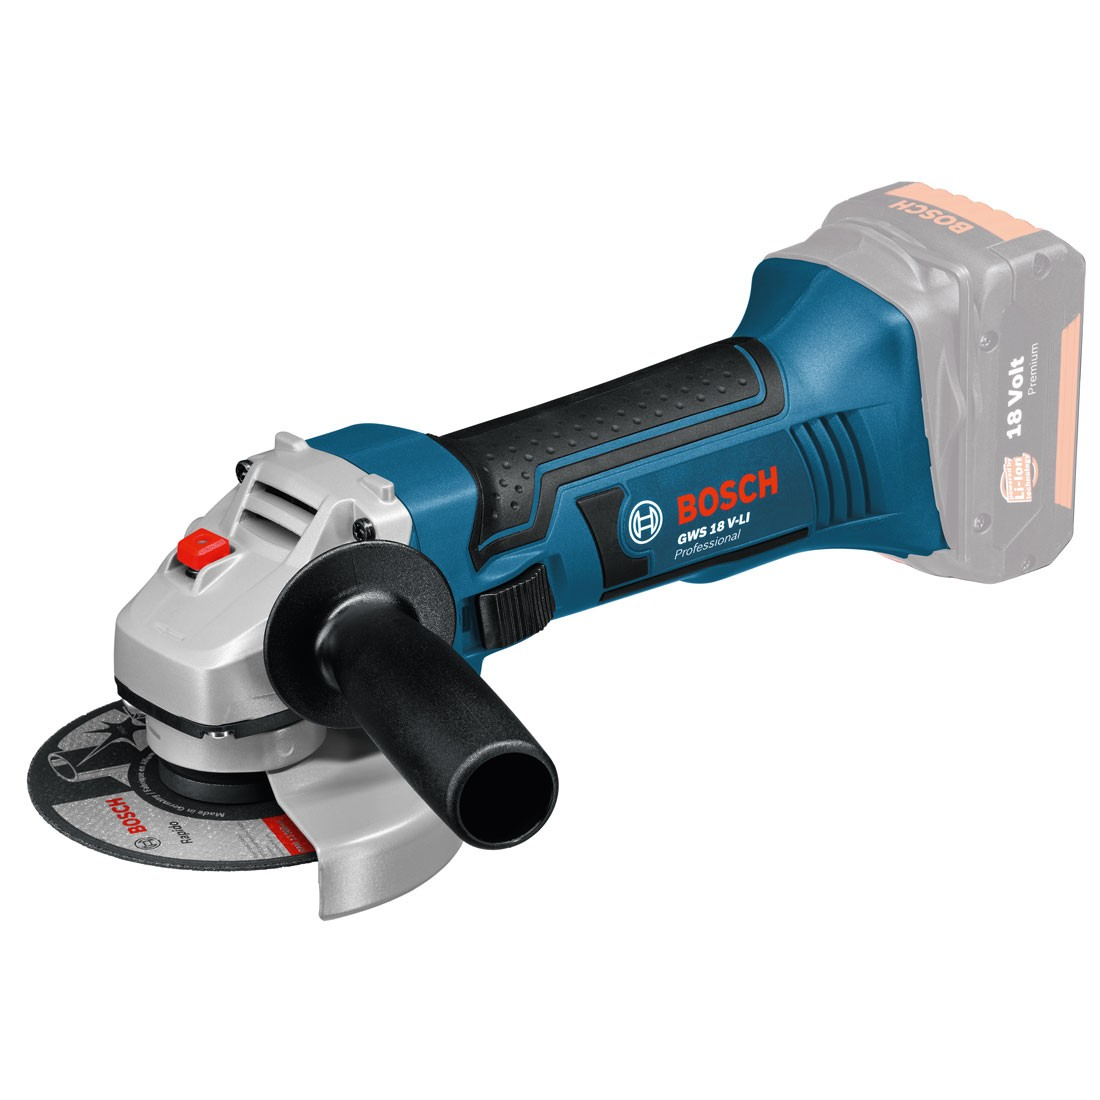 Bosch GWS 18 V-LI Angle Grinder Body Only in Carton 115mm / 4.5""